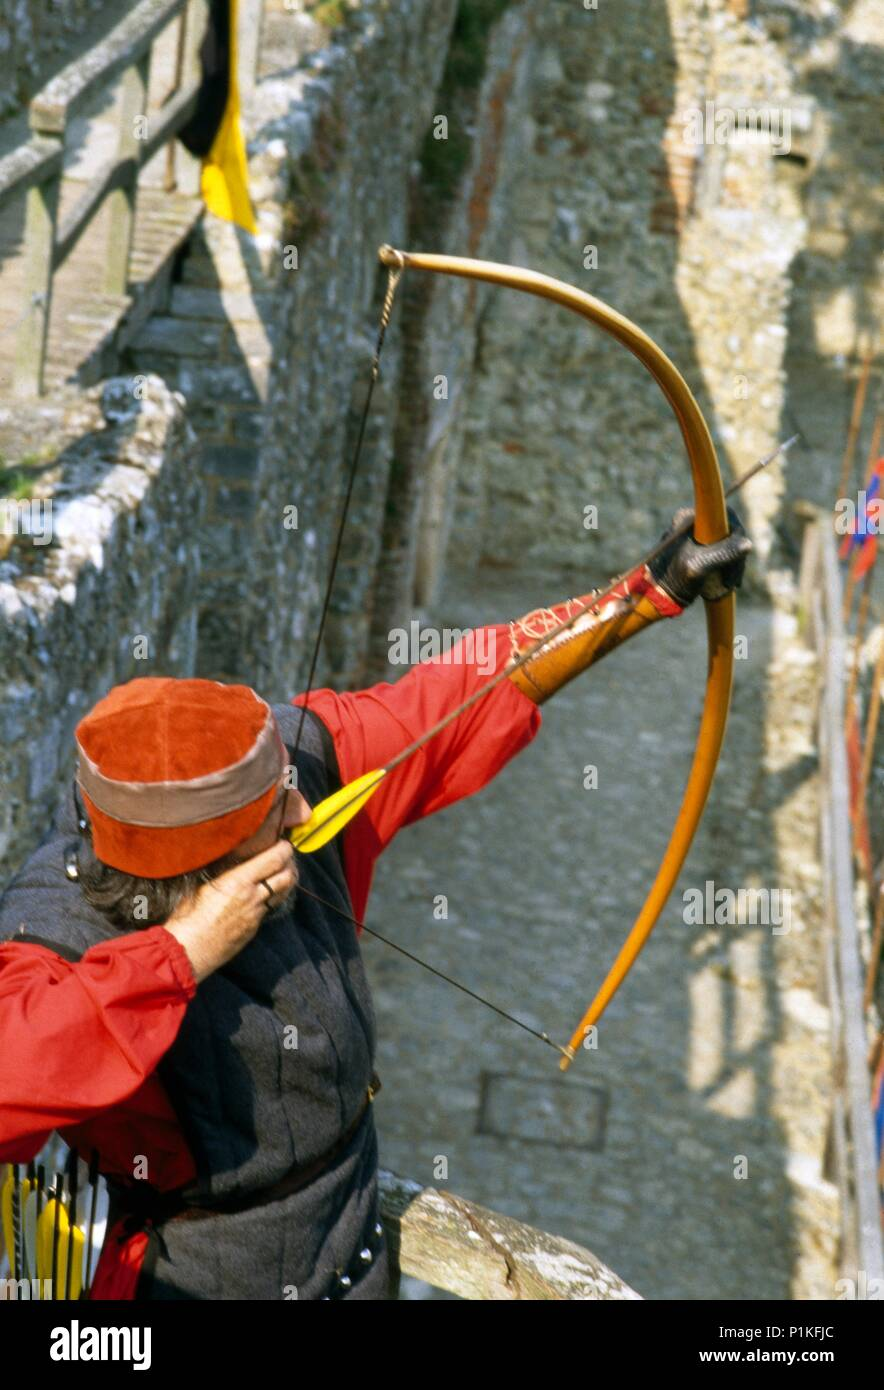 Re-enactment event at Carisbrooke Castle, Isle of Wight, c1980-c2017. An archer with bow and arrow on the battlements. - Stock Image